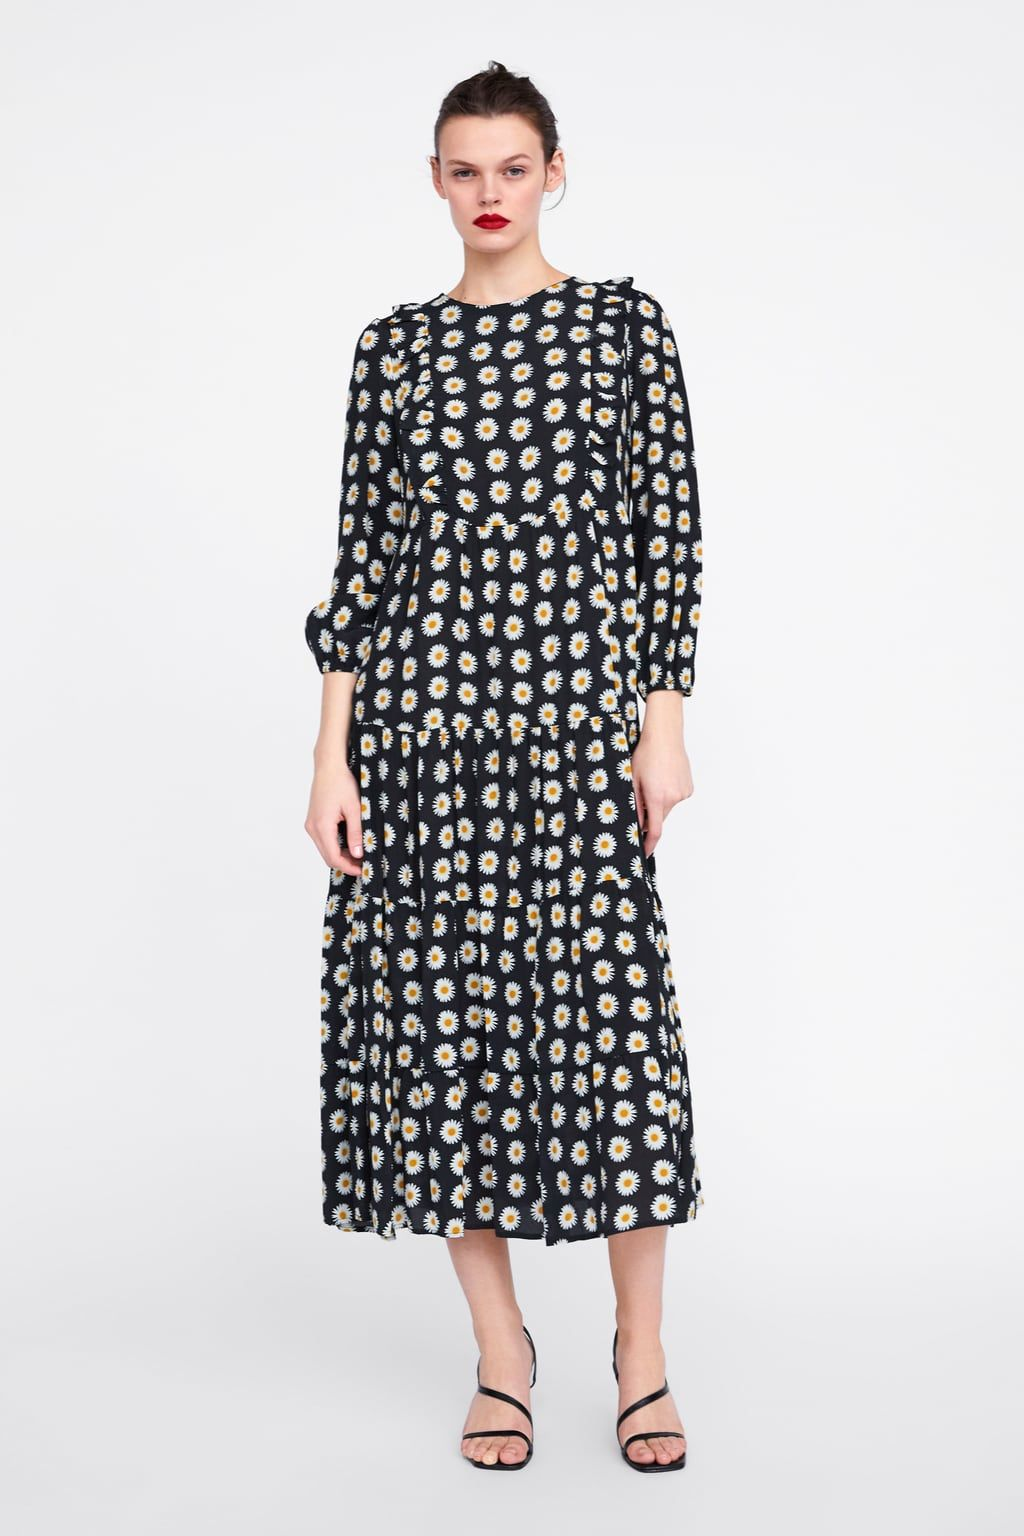 9b47e3f0161a Image 1 of FLORAL PRINT DRESS WITH RUFFLE from Zara